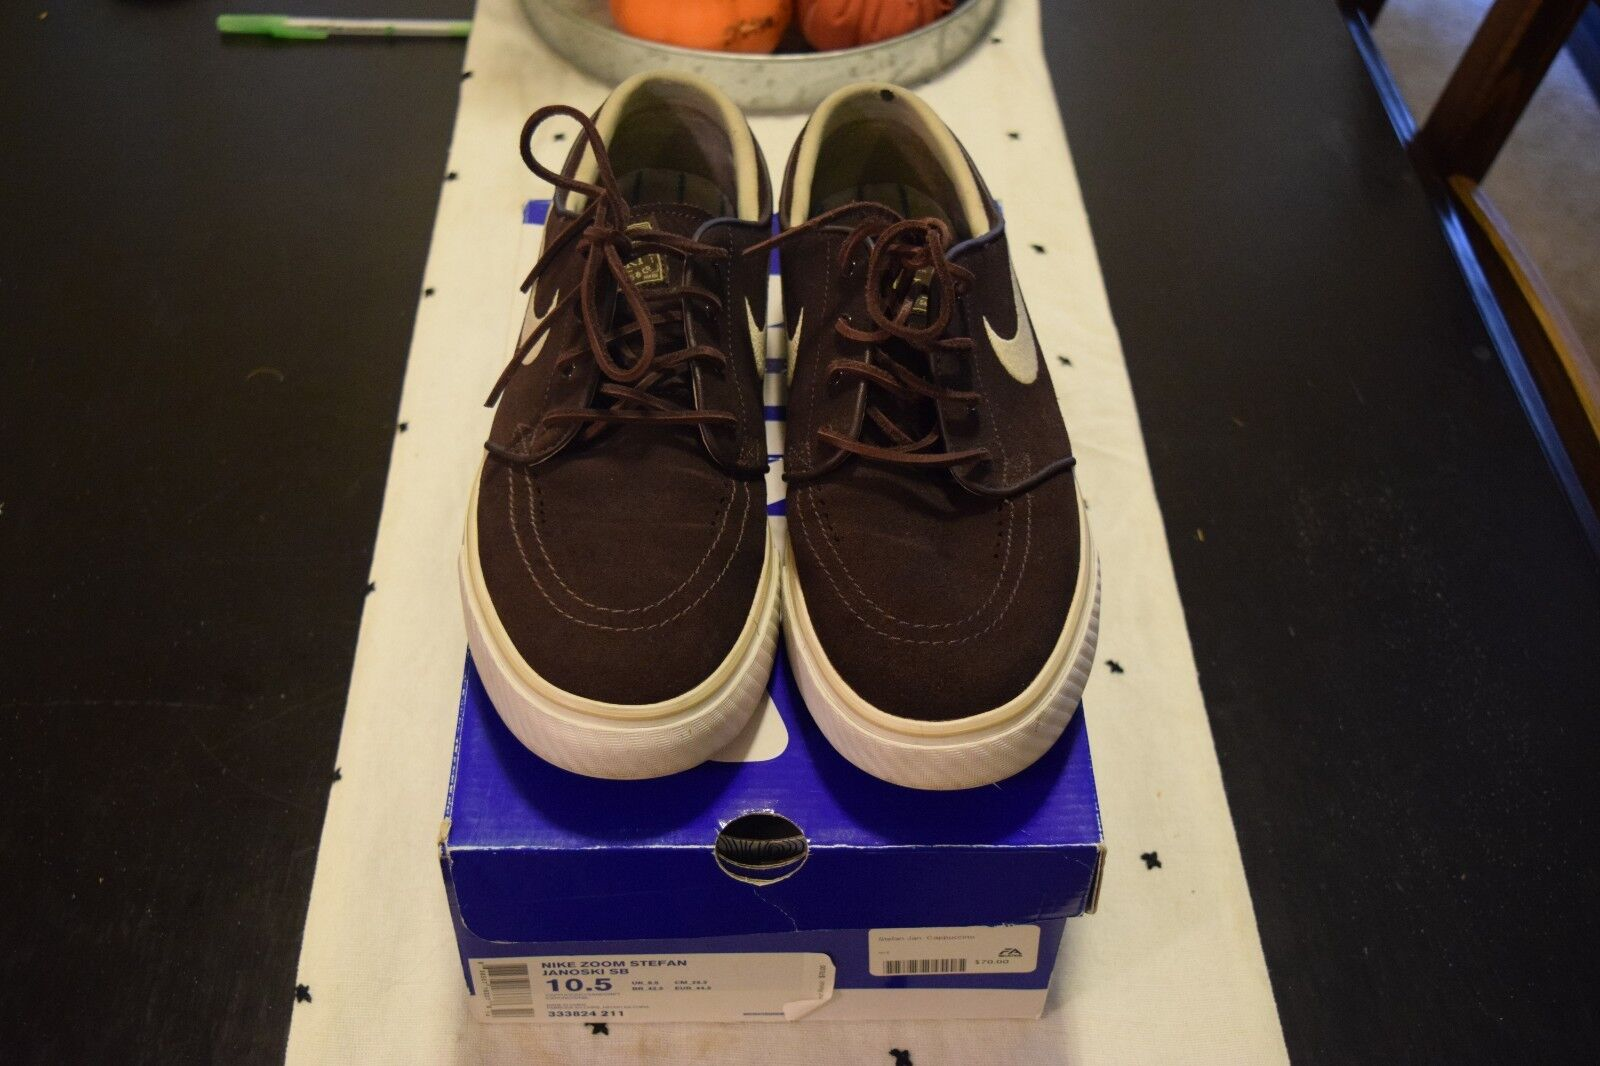 100% authentic 276c9 920df ... clearance nike sb zoom janoski og cappuccino size 10.5 10.5 size 7a82eb  742d5 8901b